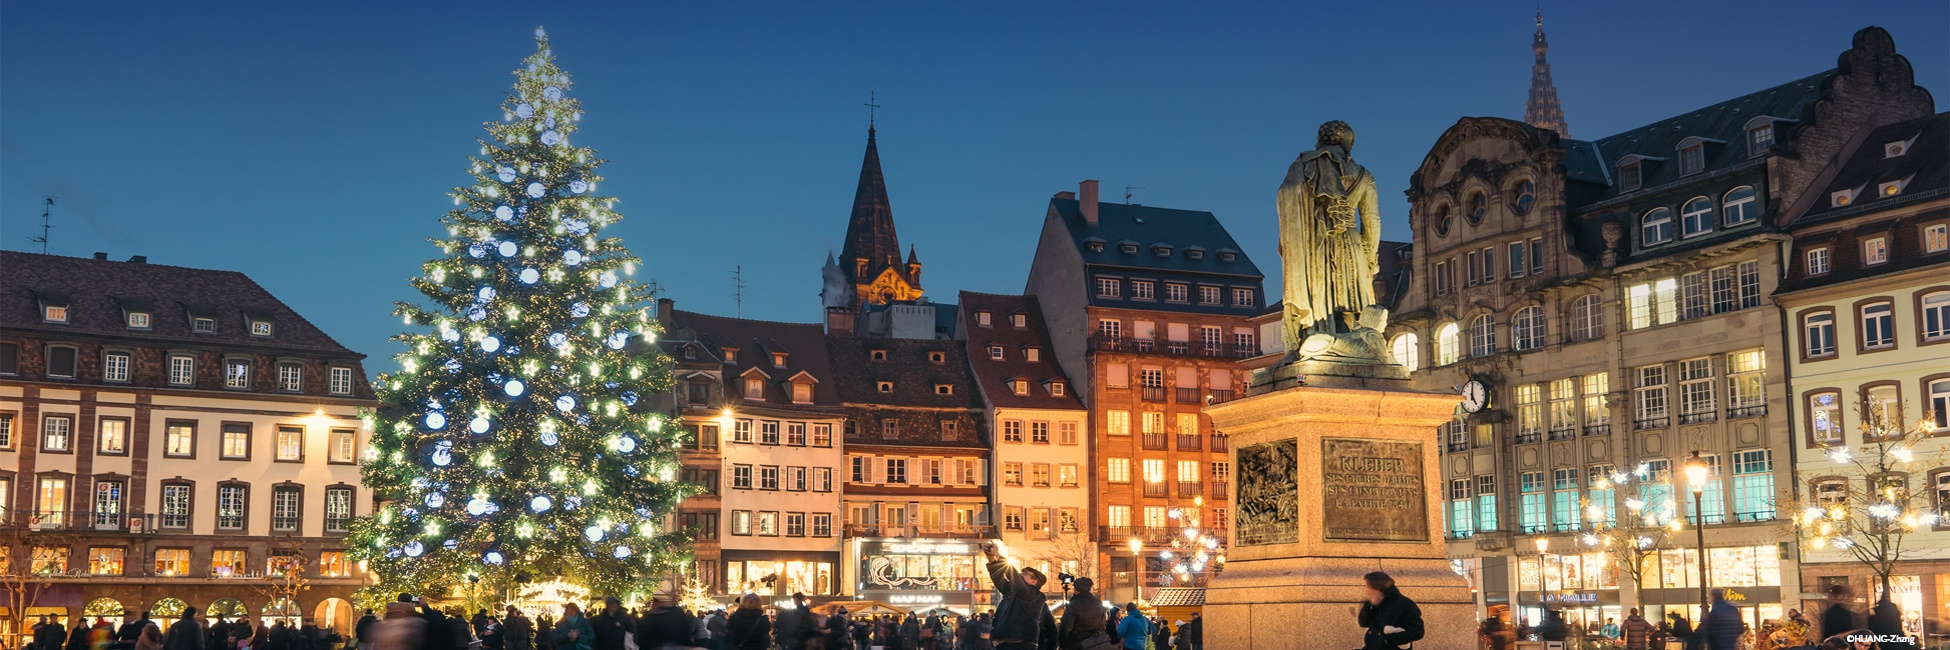 Christmas In Strasbourg 2020 European Christmas Markets Cruises 2020: Strasbourg, Colmar